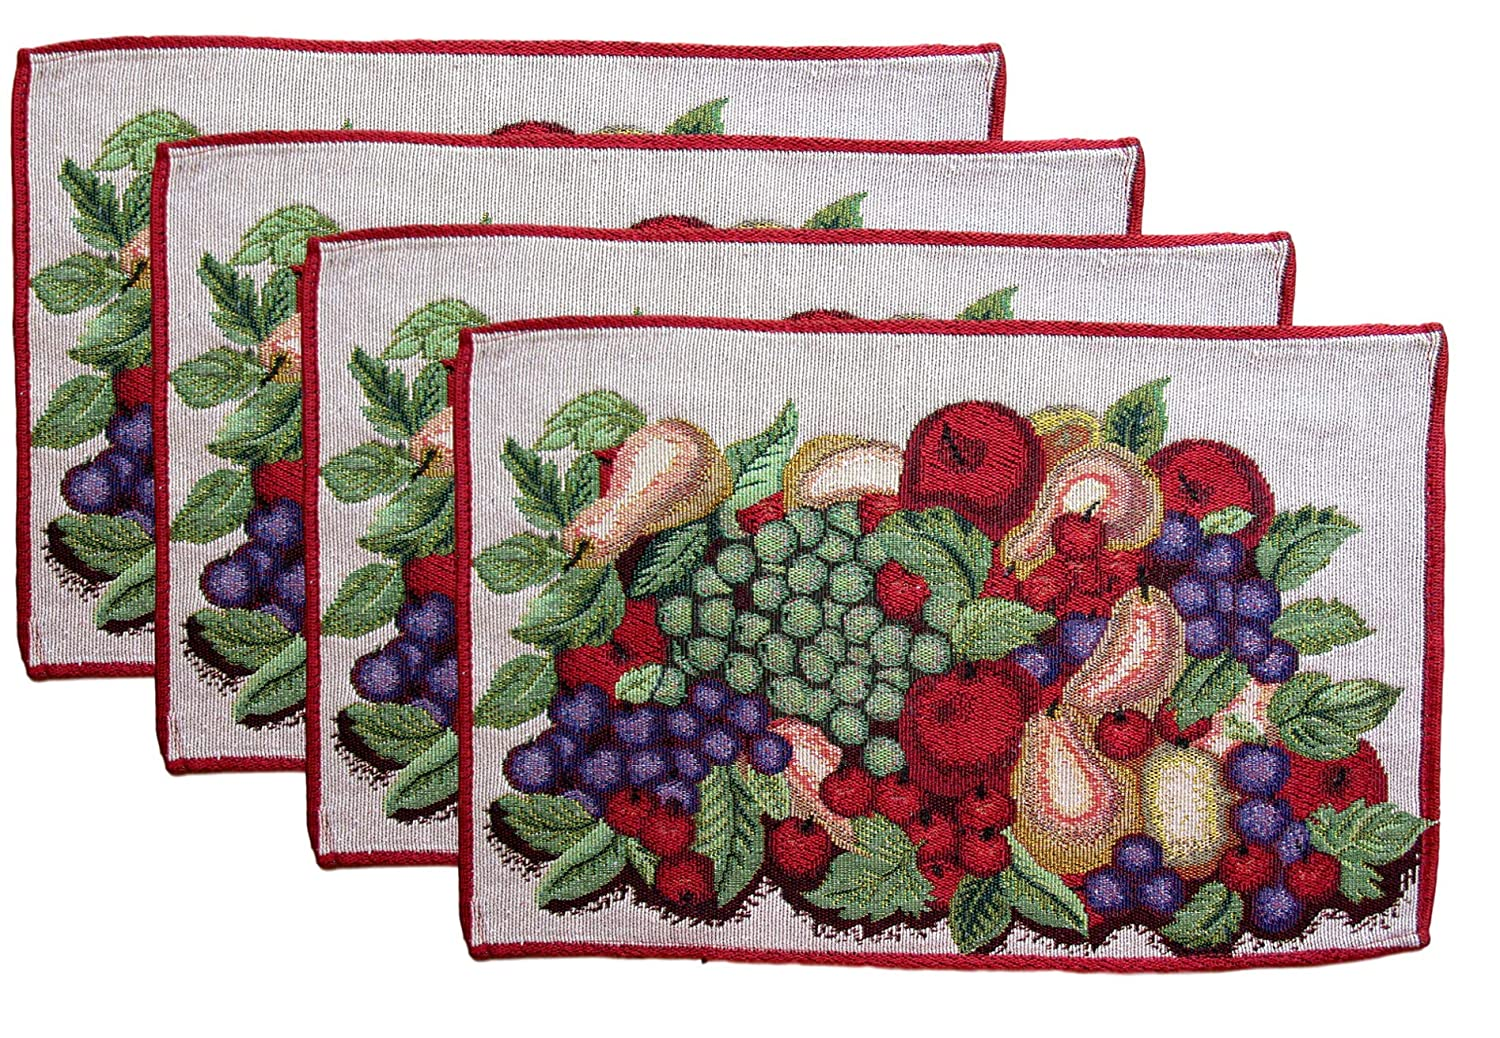 Woven Tapestry Wine Cheese and Grapes Place Mats Set of 4 Fruit Bowl - Green and Purple Grapes